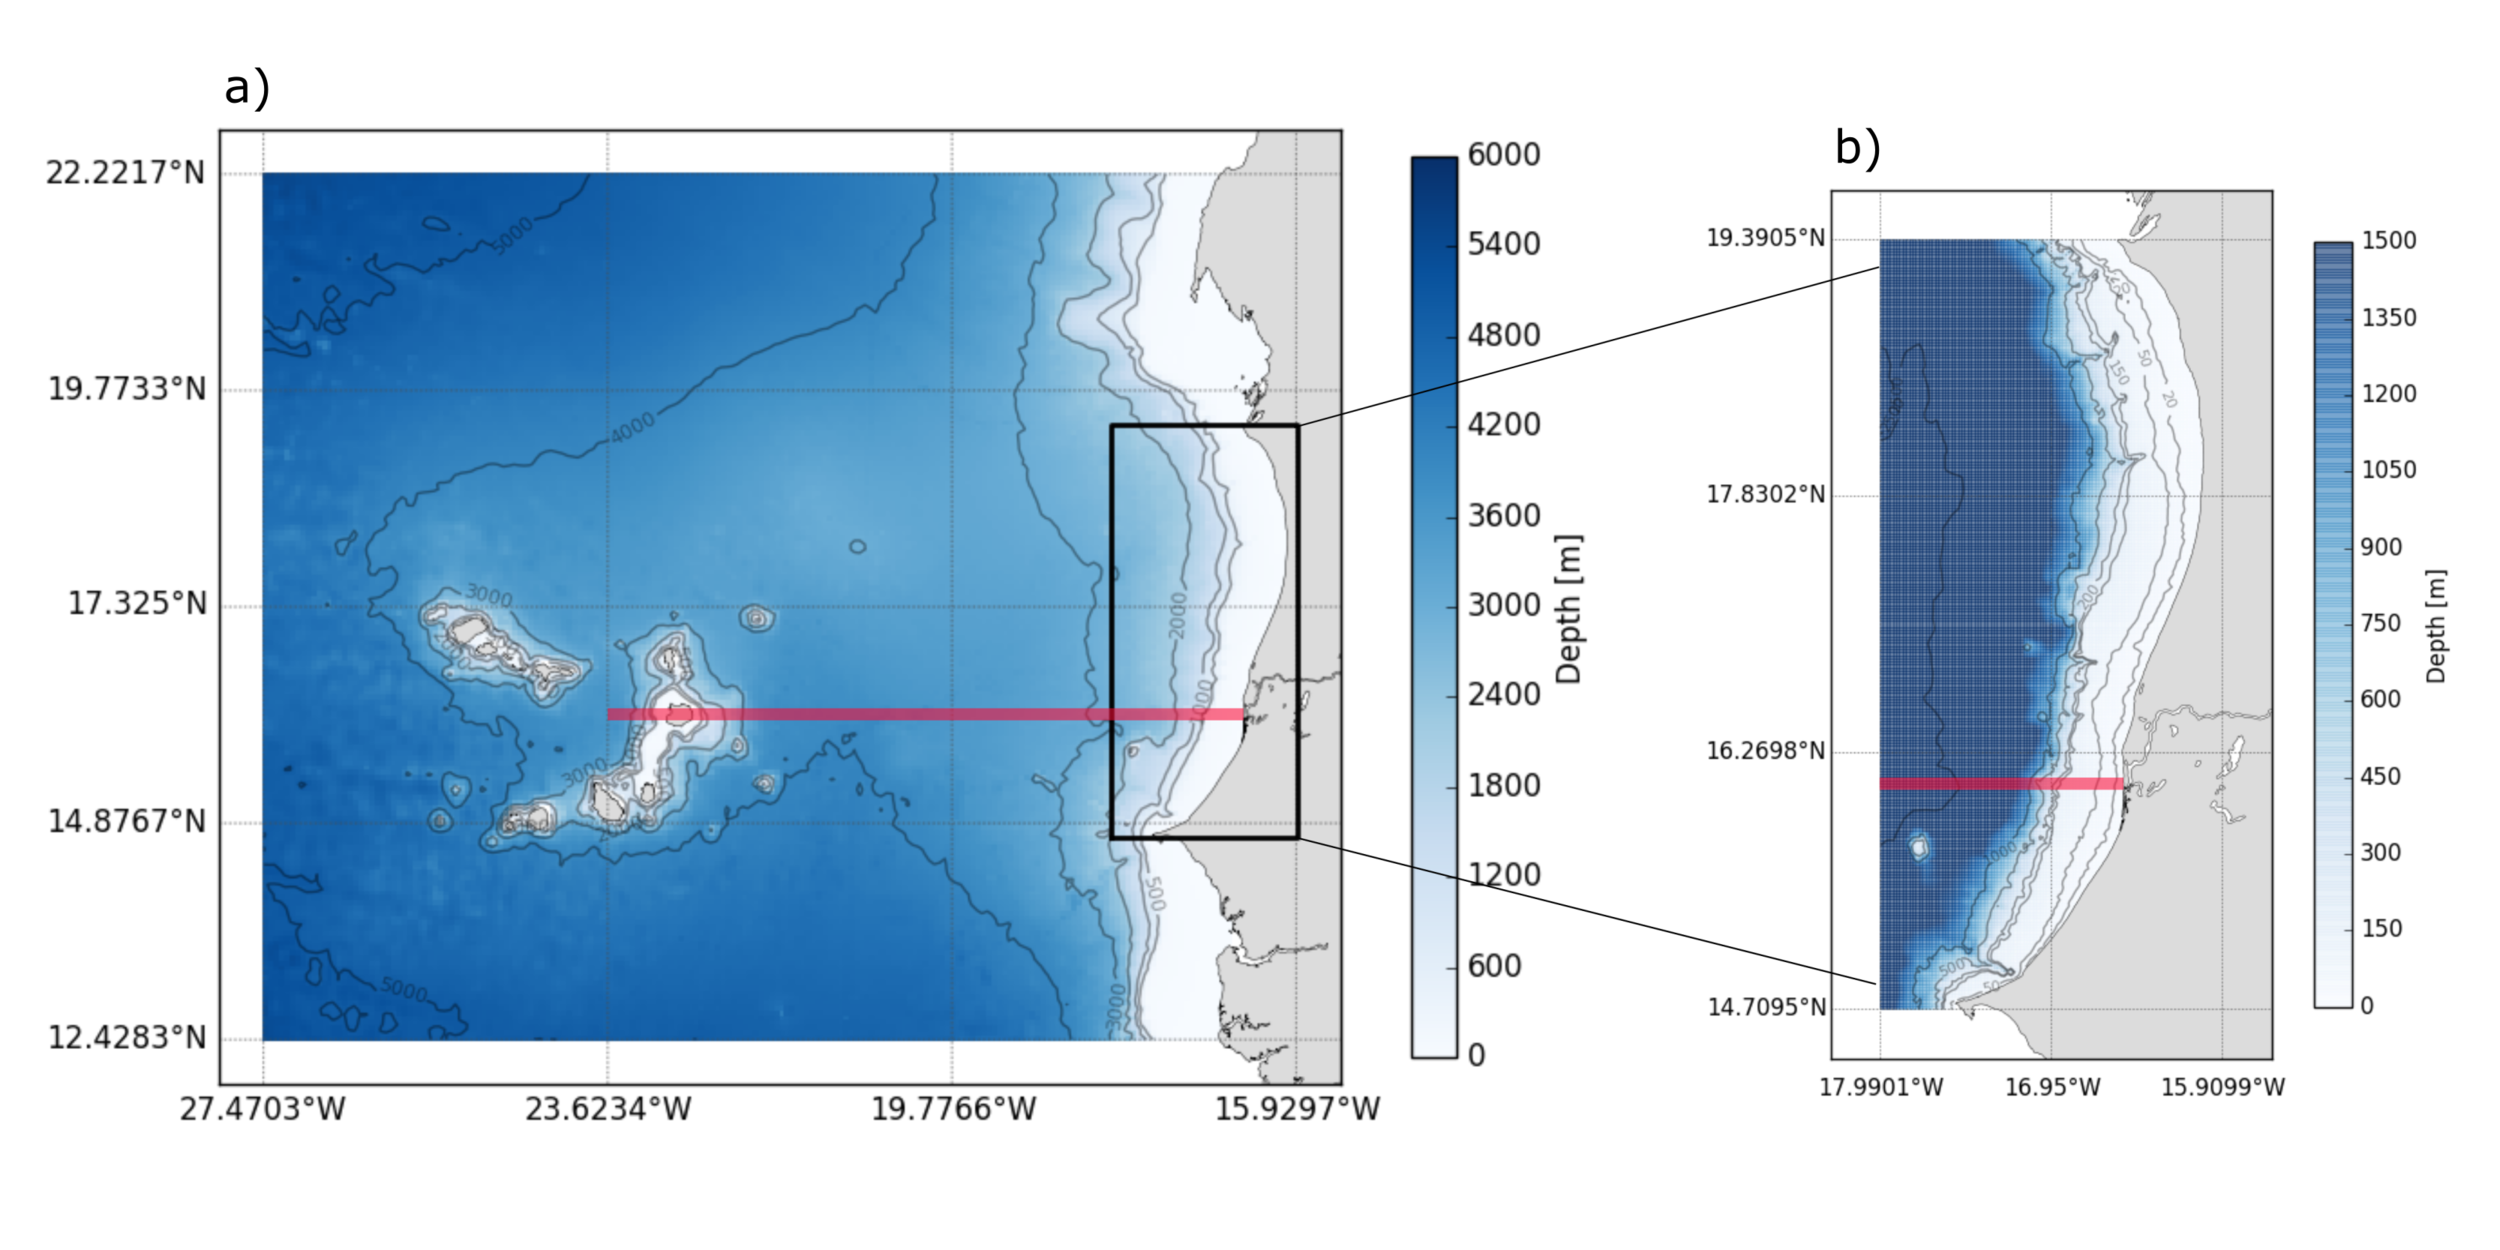 Figure 2: ROMS (a) regional (6 km) and (b) local (2km) computational model grids. The red lines illustrate the transect corresponding to the vertical sigma grid structures provided in the following figure. Note the bathymetry is represented with distinct colorbars in (a) and (b).